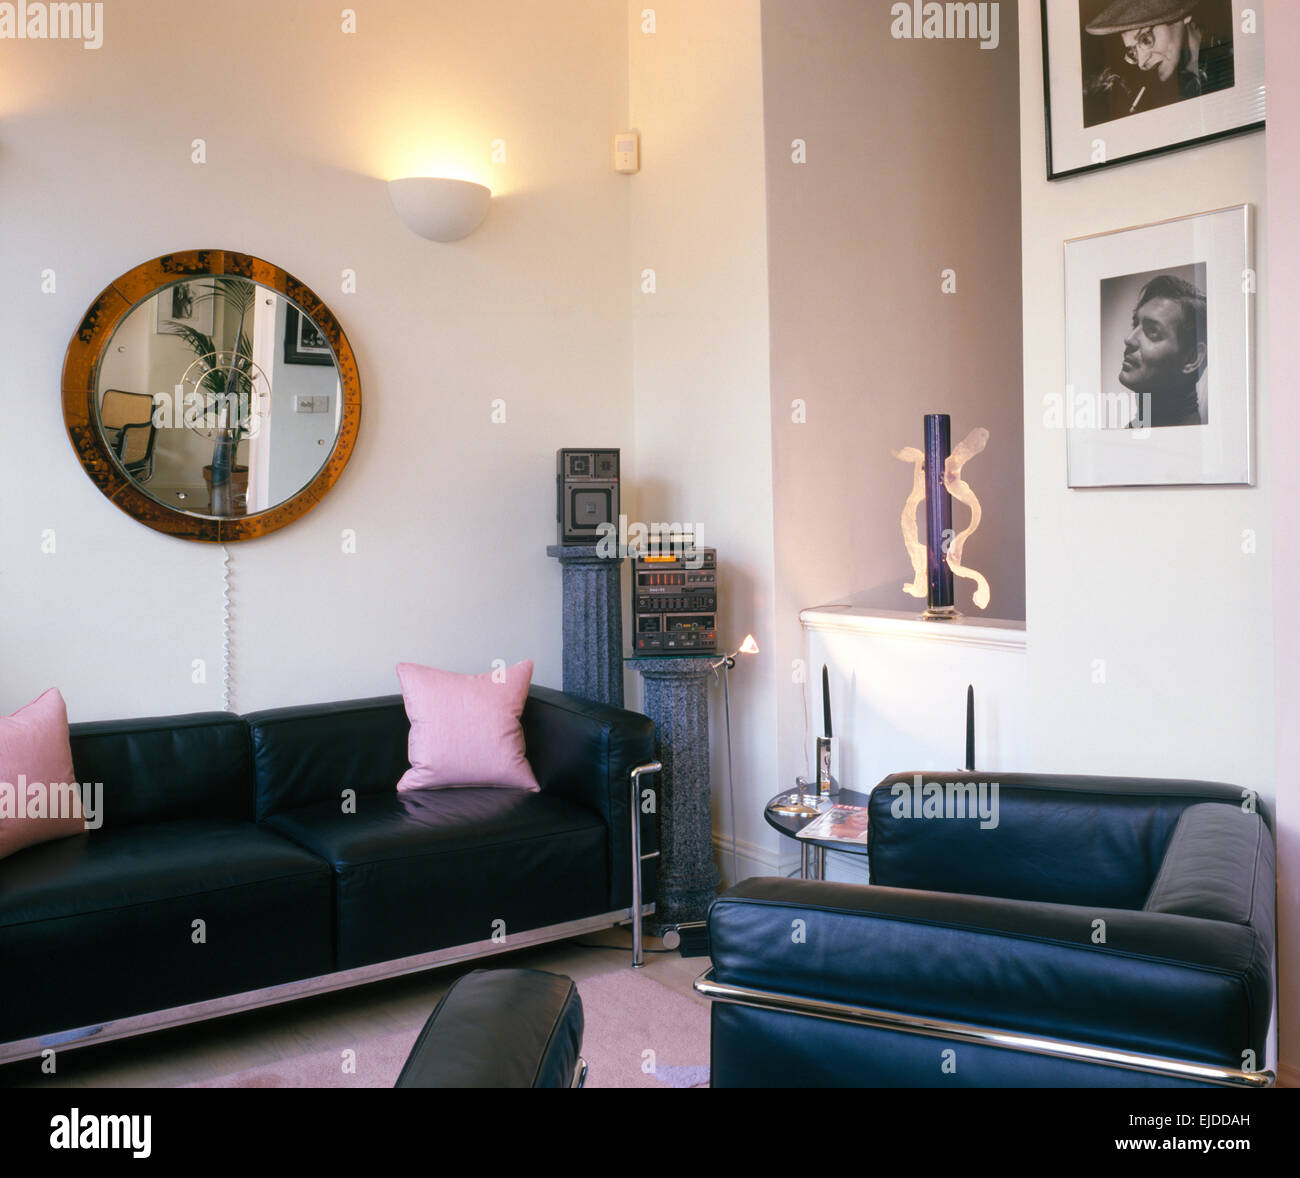 Black Leather Chrome Furniture In Eighties Living Room Stock Photo Royalty Free Image 80201145